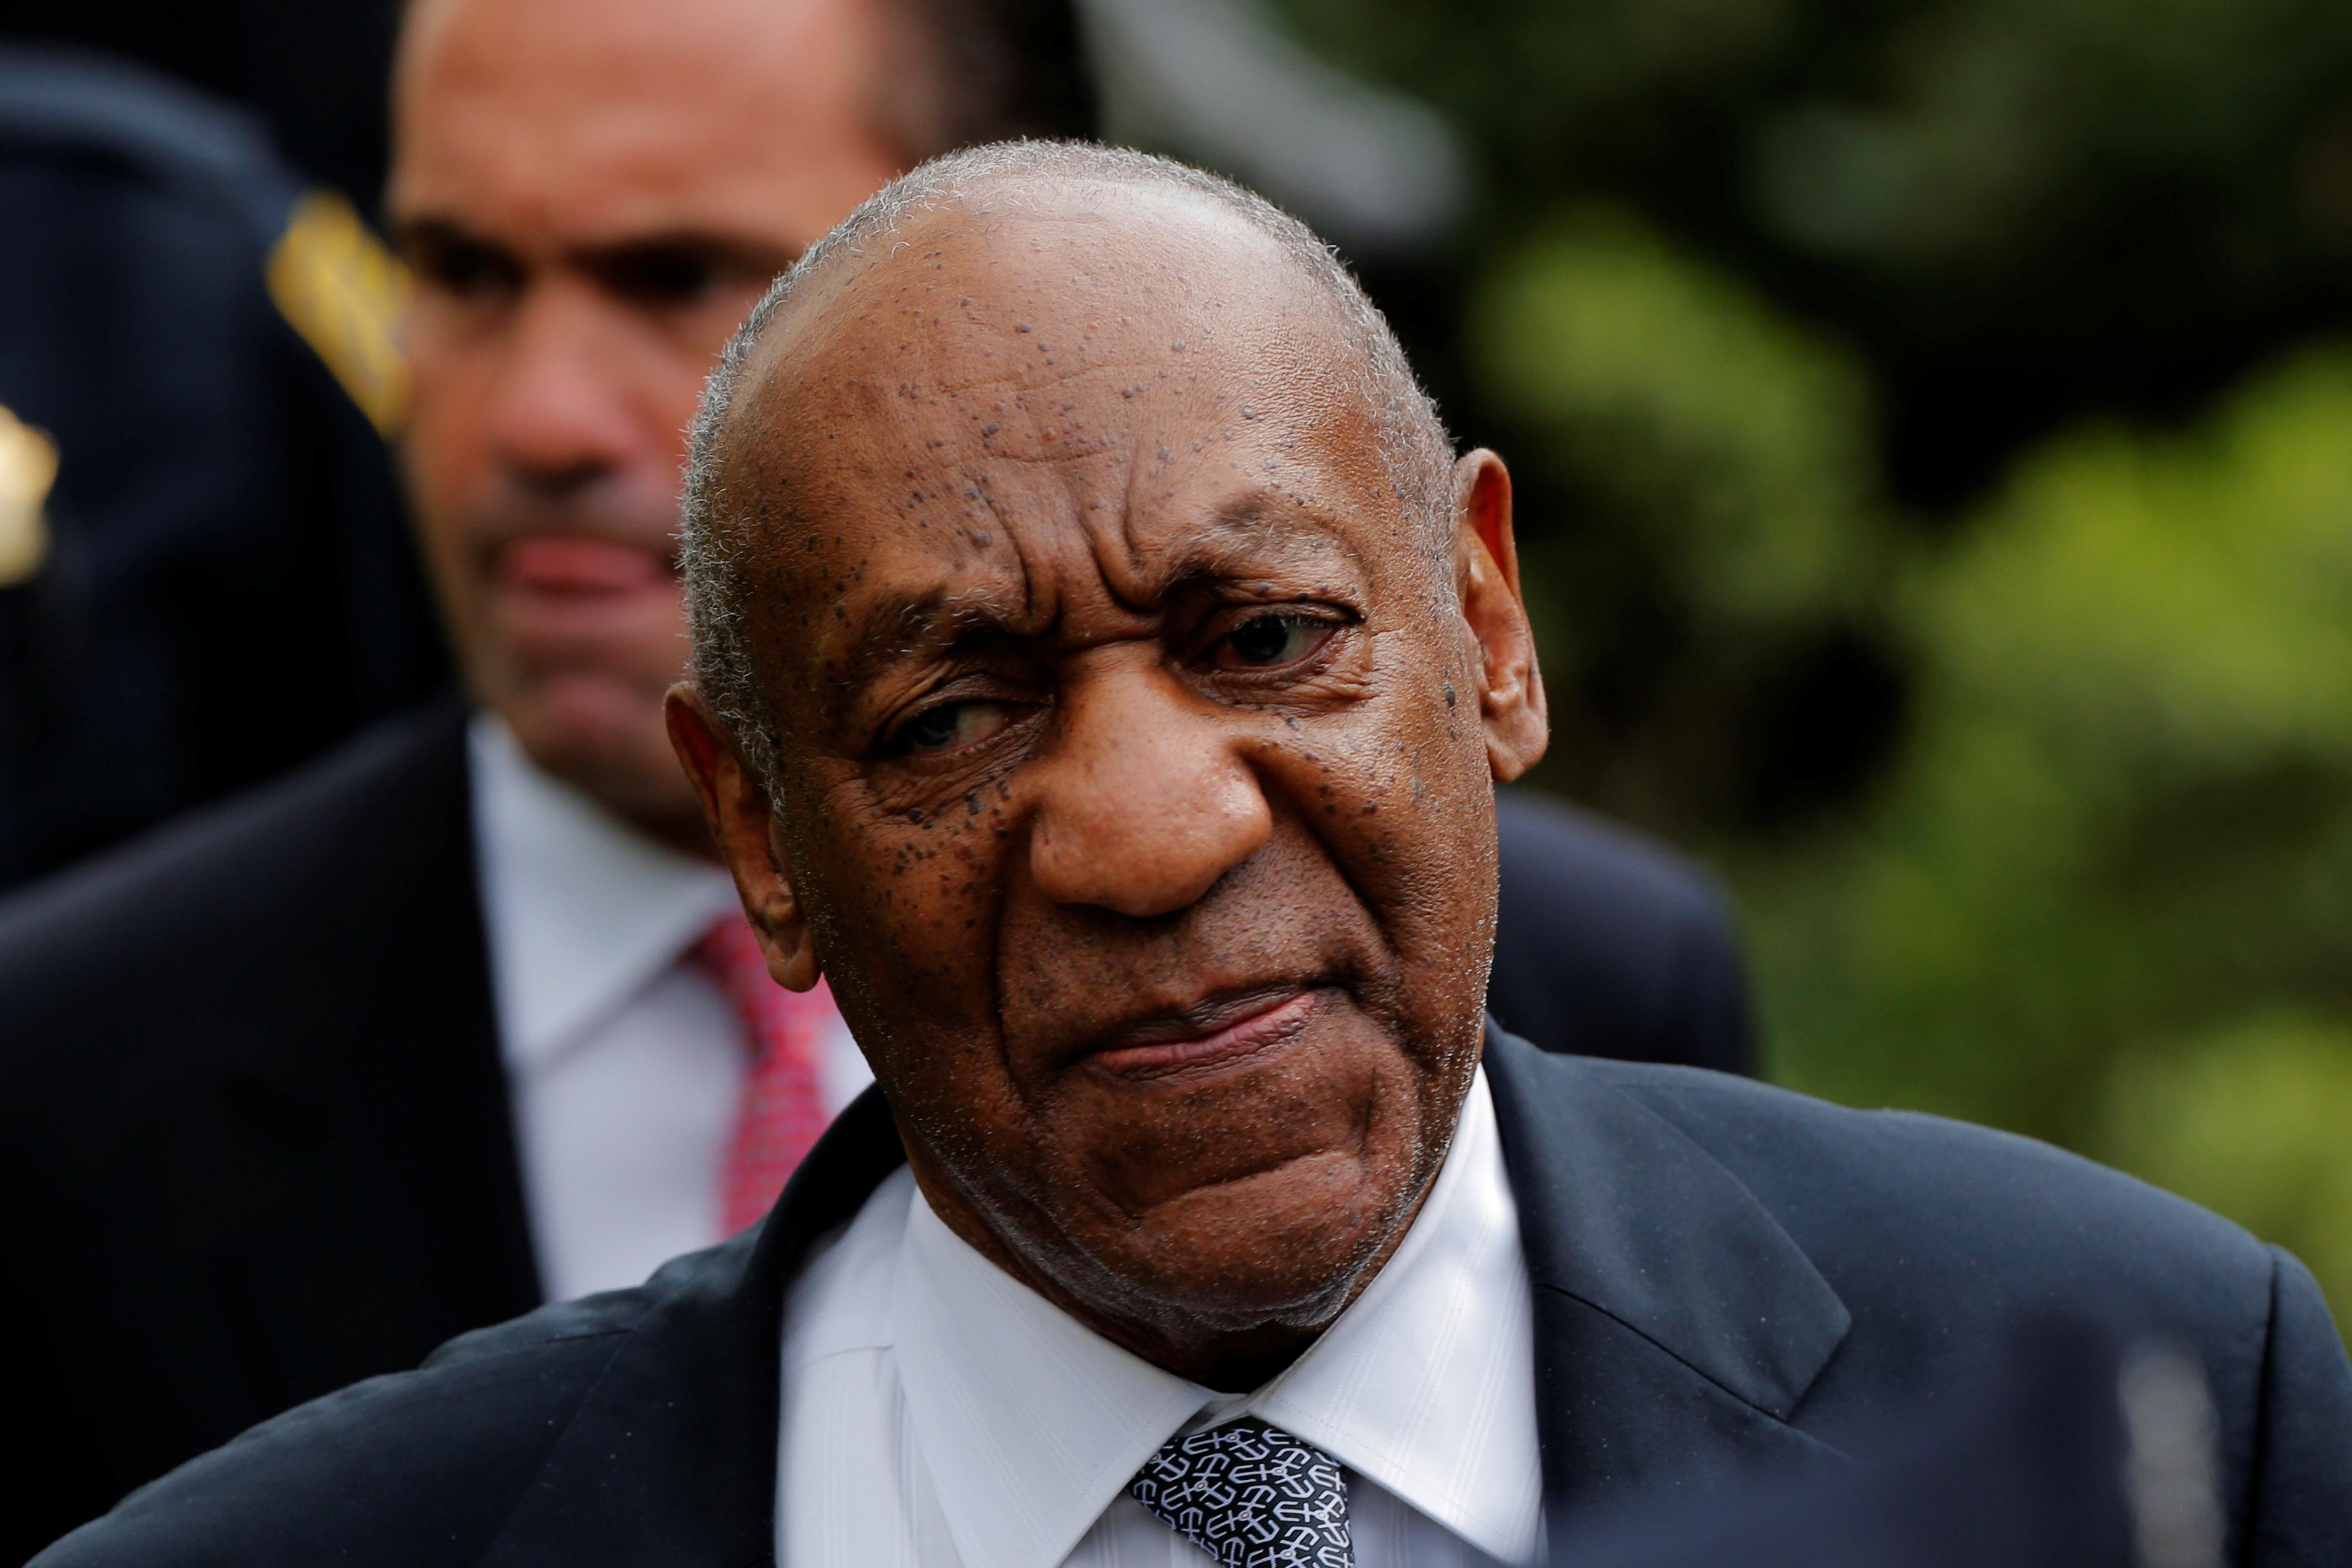 Cosby on trial: Gripping testimony, brisk pace mark Week 1